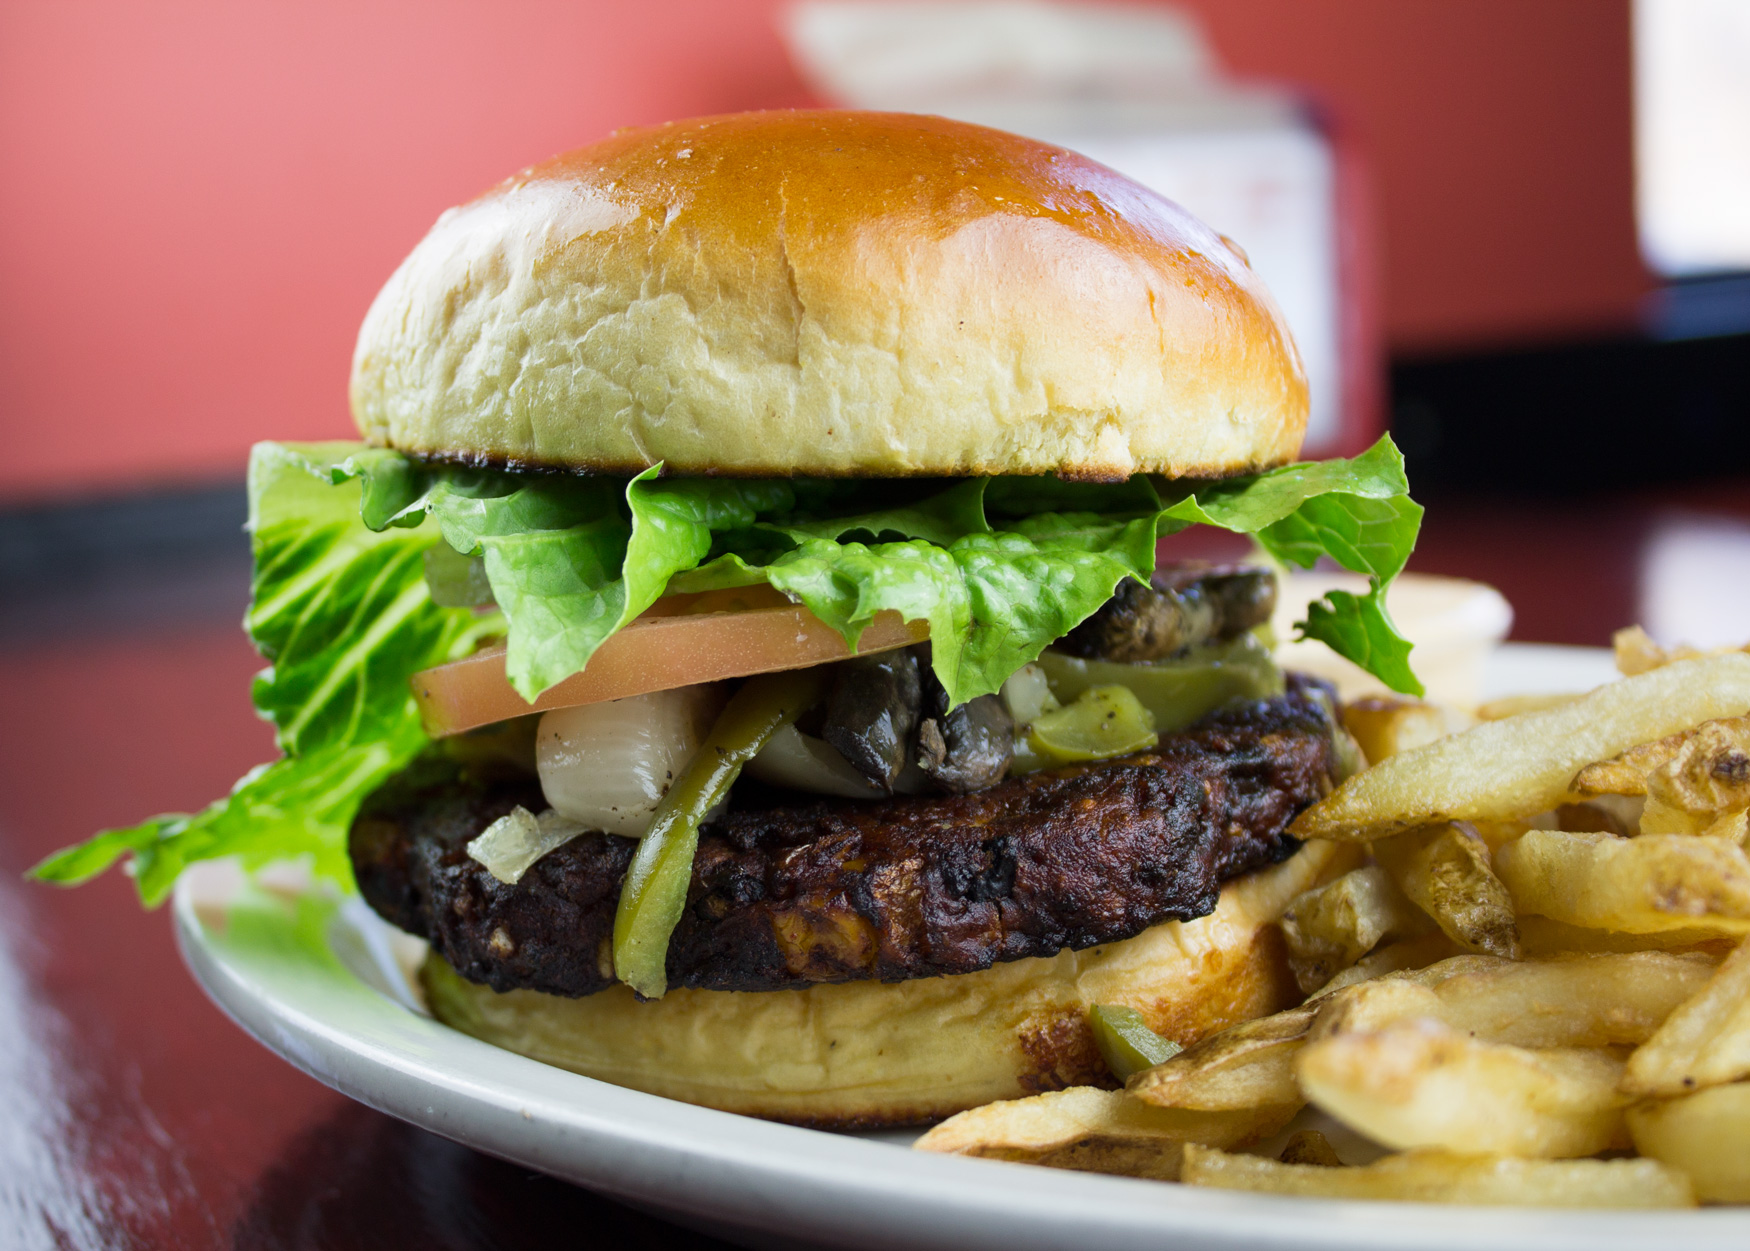 BLACK BEAN CHIPOTLE PHILLY BURGER. Southwestern Style veggie patty made with brown rice, black beans, and chipotle pepper. Served on a warm homestyle bun with your choice of cheese & toppings